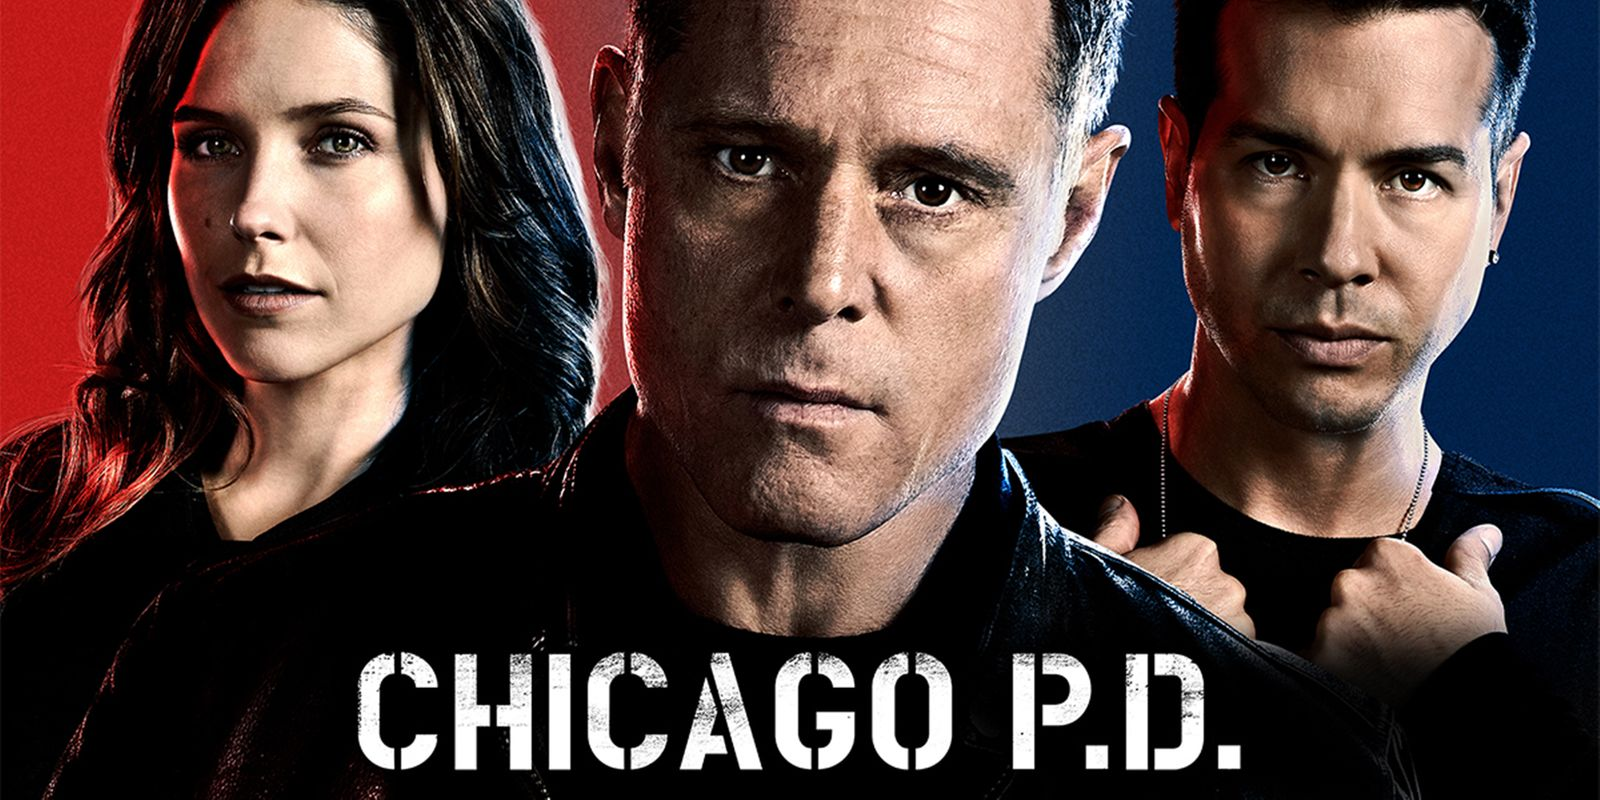 chicago-pd-crop-rev.jpg